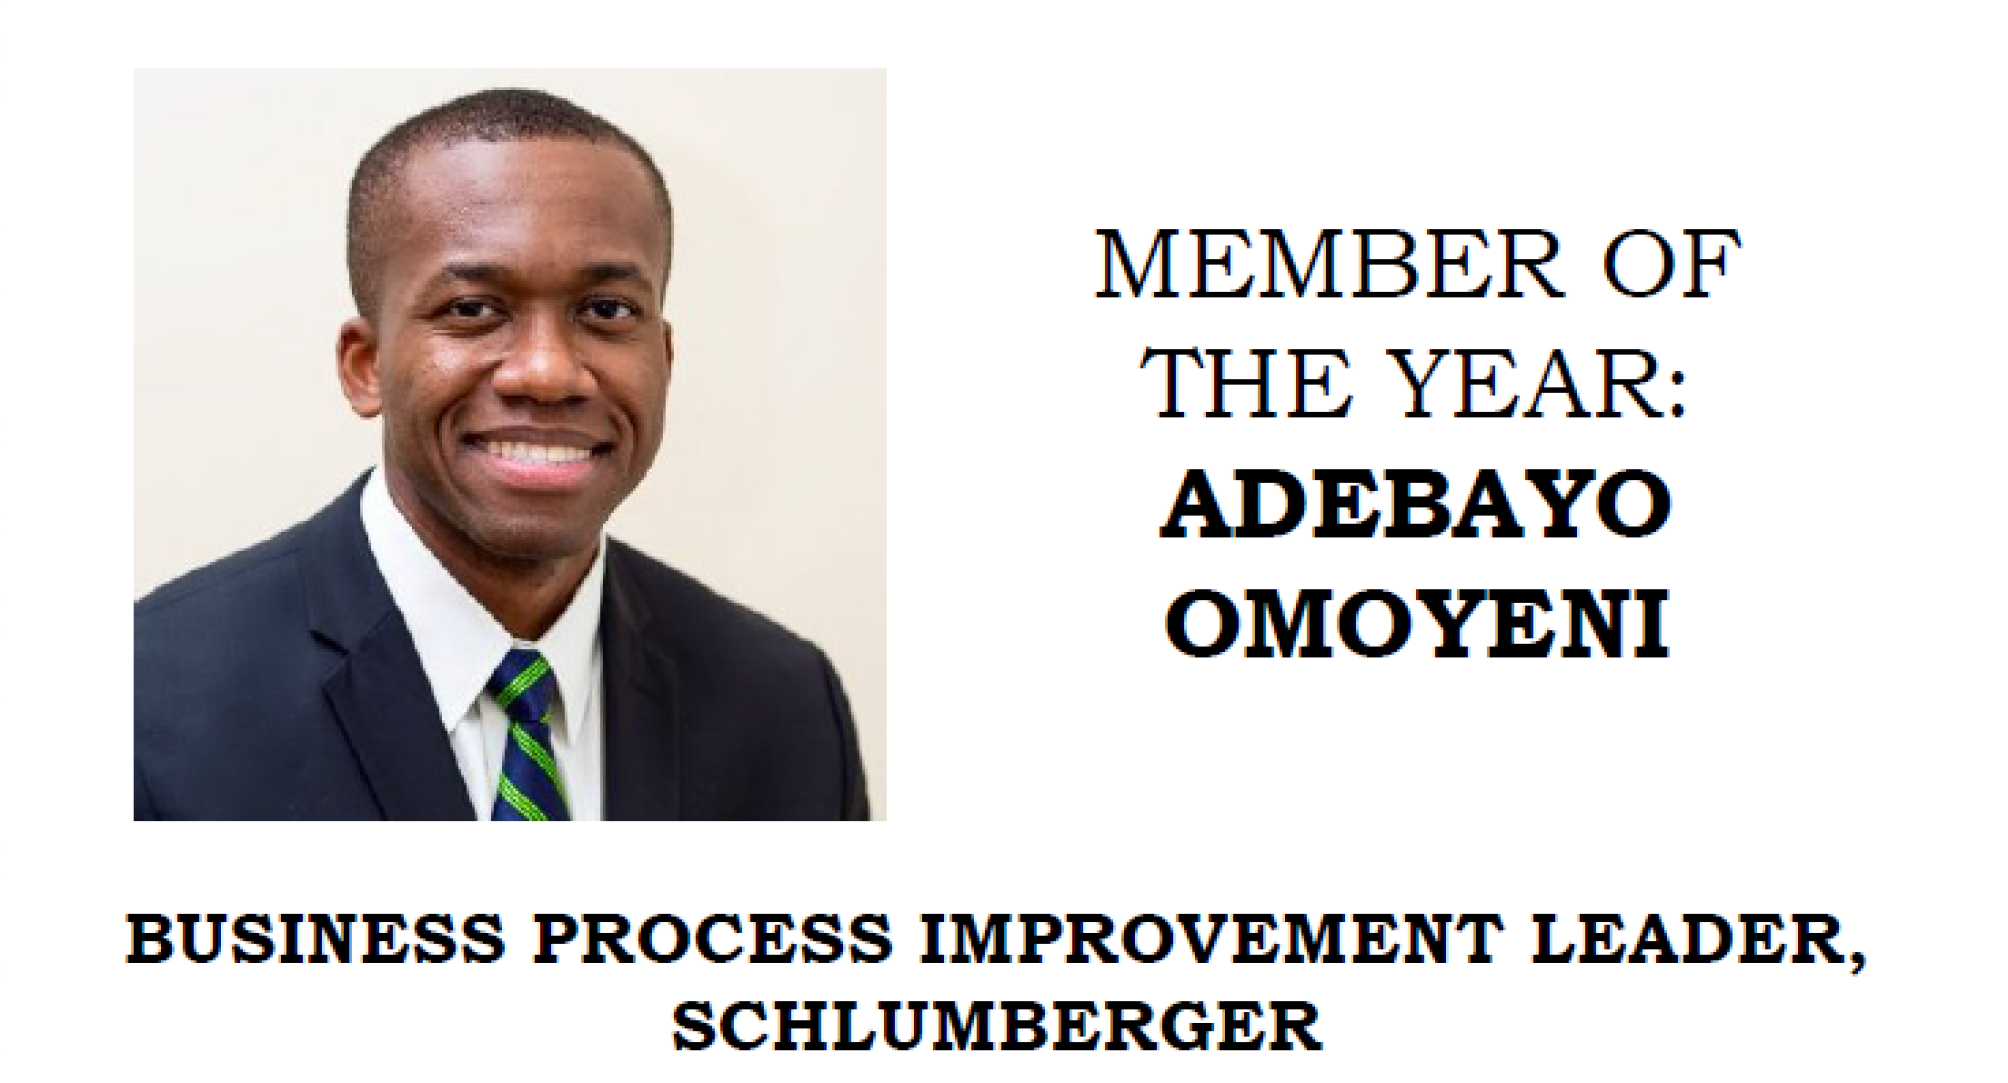 Adebayo Omoyeni - Member of the Year